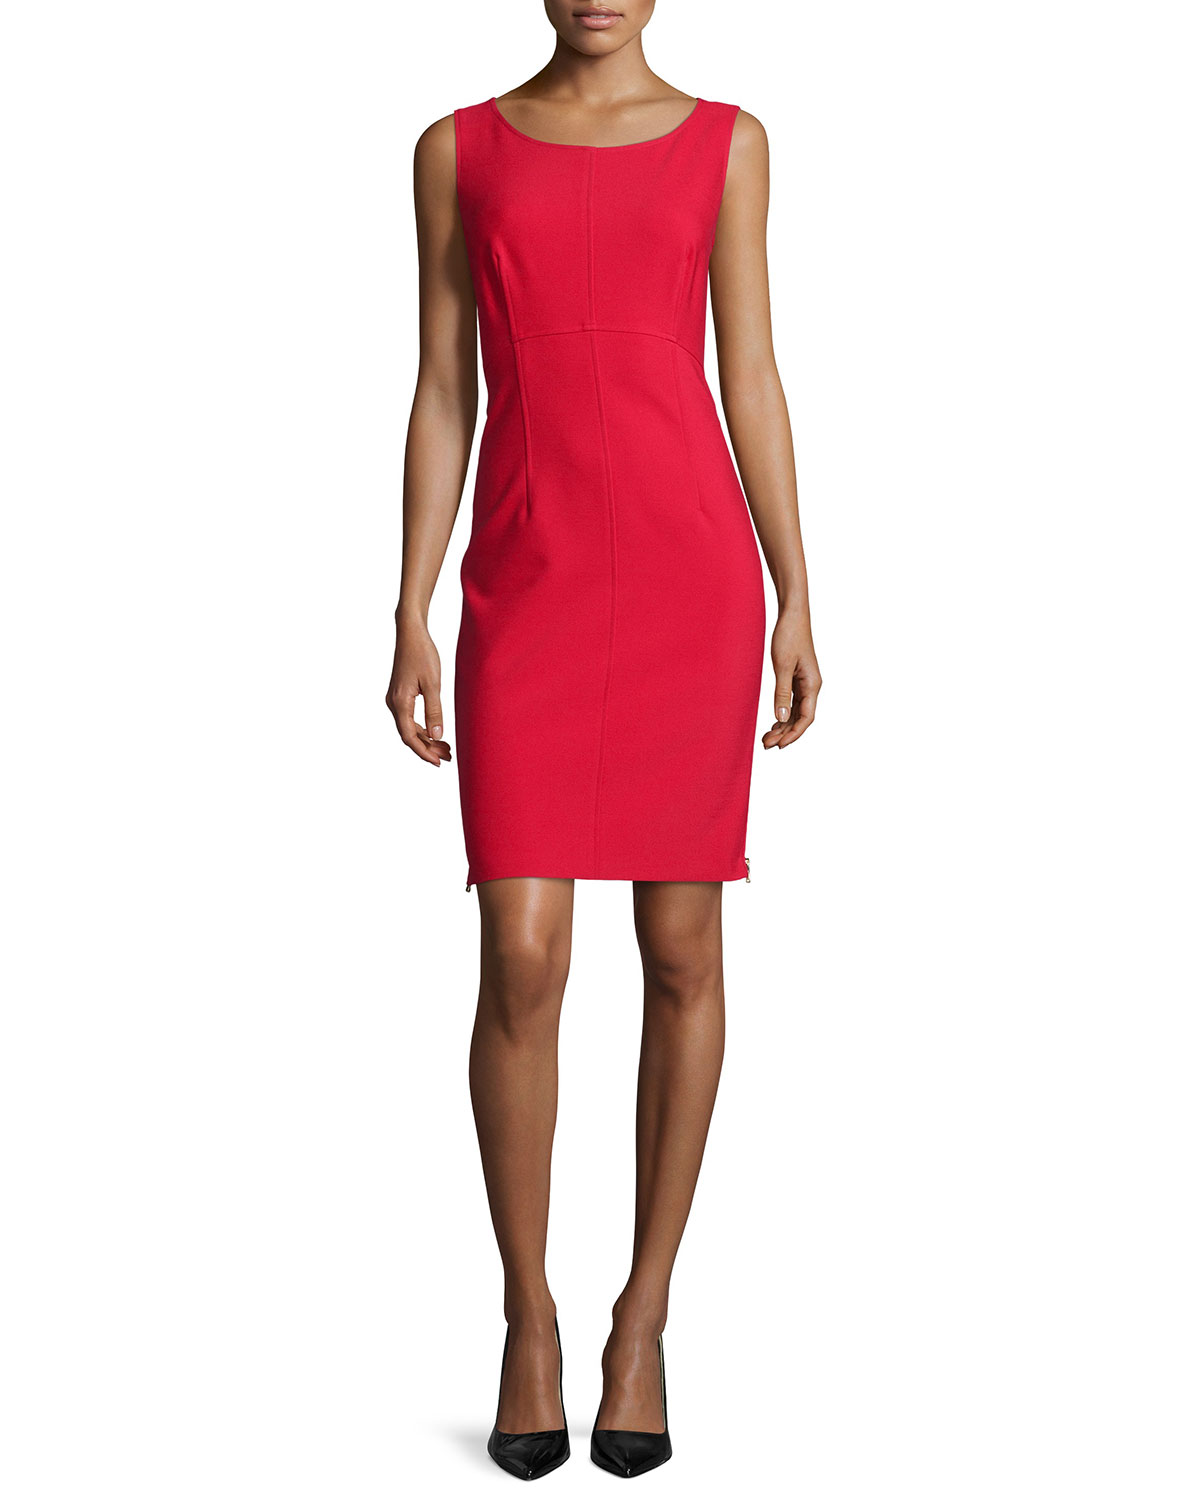 Sleeveless Sheath Dress W/ Side Zips, Size: 0, Red - Milly